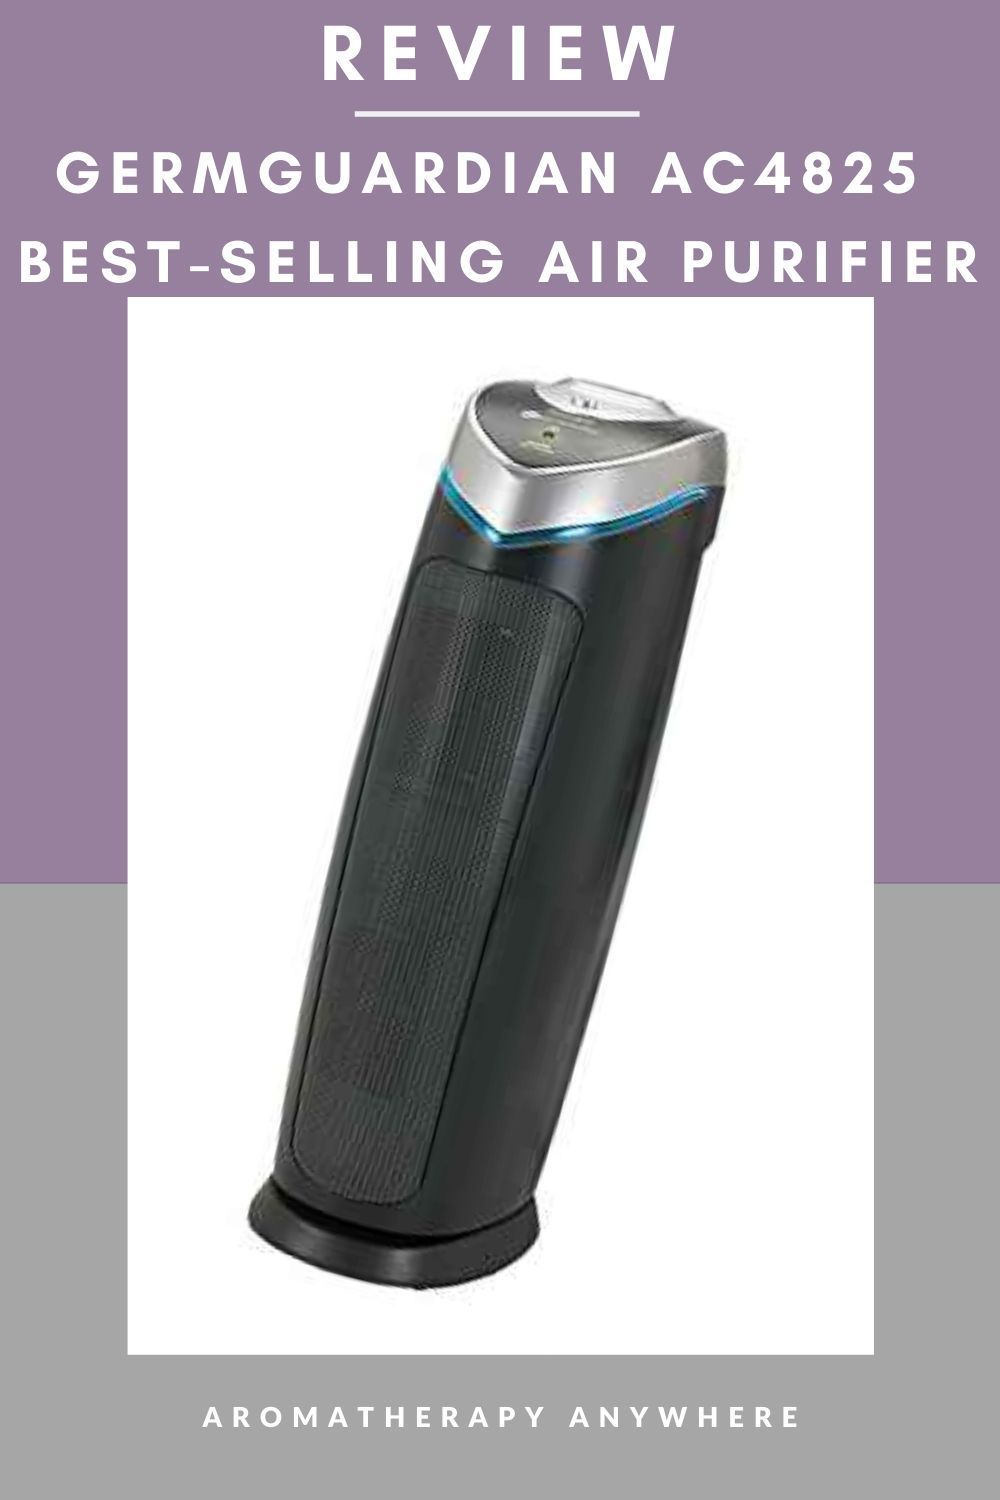 Germguardian Ac4825 Air Purifier Review Aromatherapy Anywhere In 2020 Air Purifier Essential Oil Diffuser Reviews Air Purifier Reviews